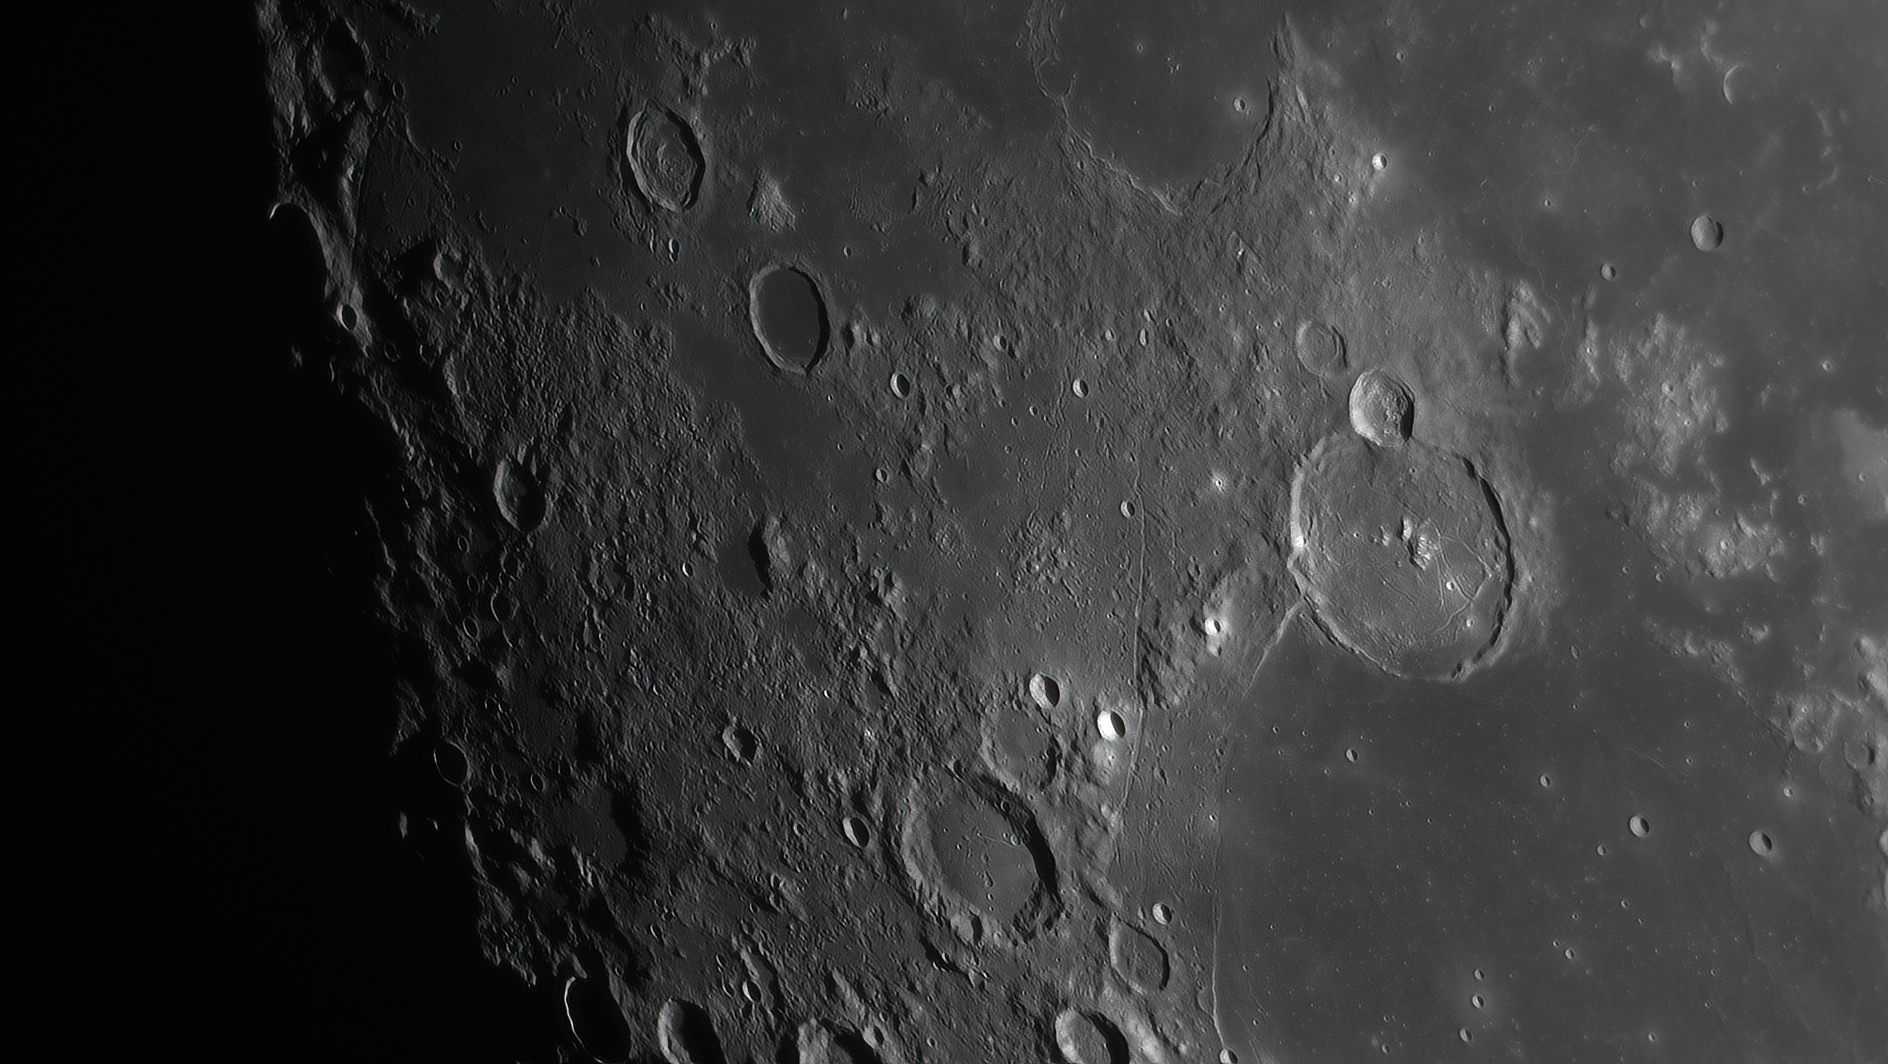 6010754ad4be0_Moon_221131_250121_ZWOASI290MM_R-ccd_AS_P30_lapl5_ap661-DeNoiseAI-low-light.jpg.ddc8ea8c24179d7bdc8db8e227fde3ea.jpg